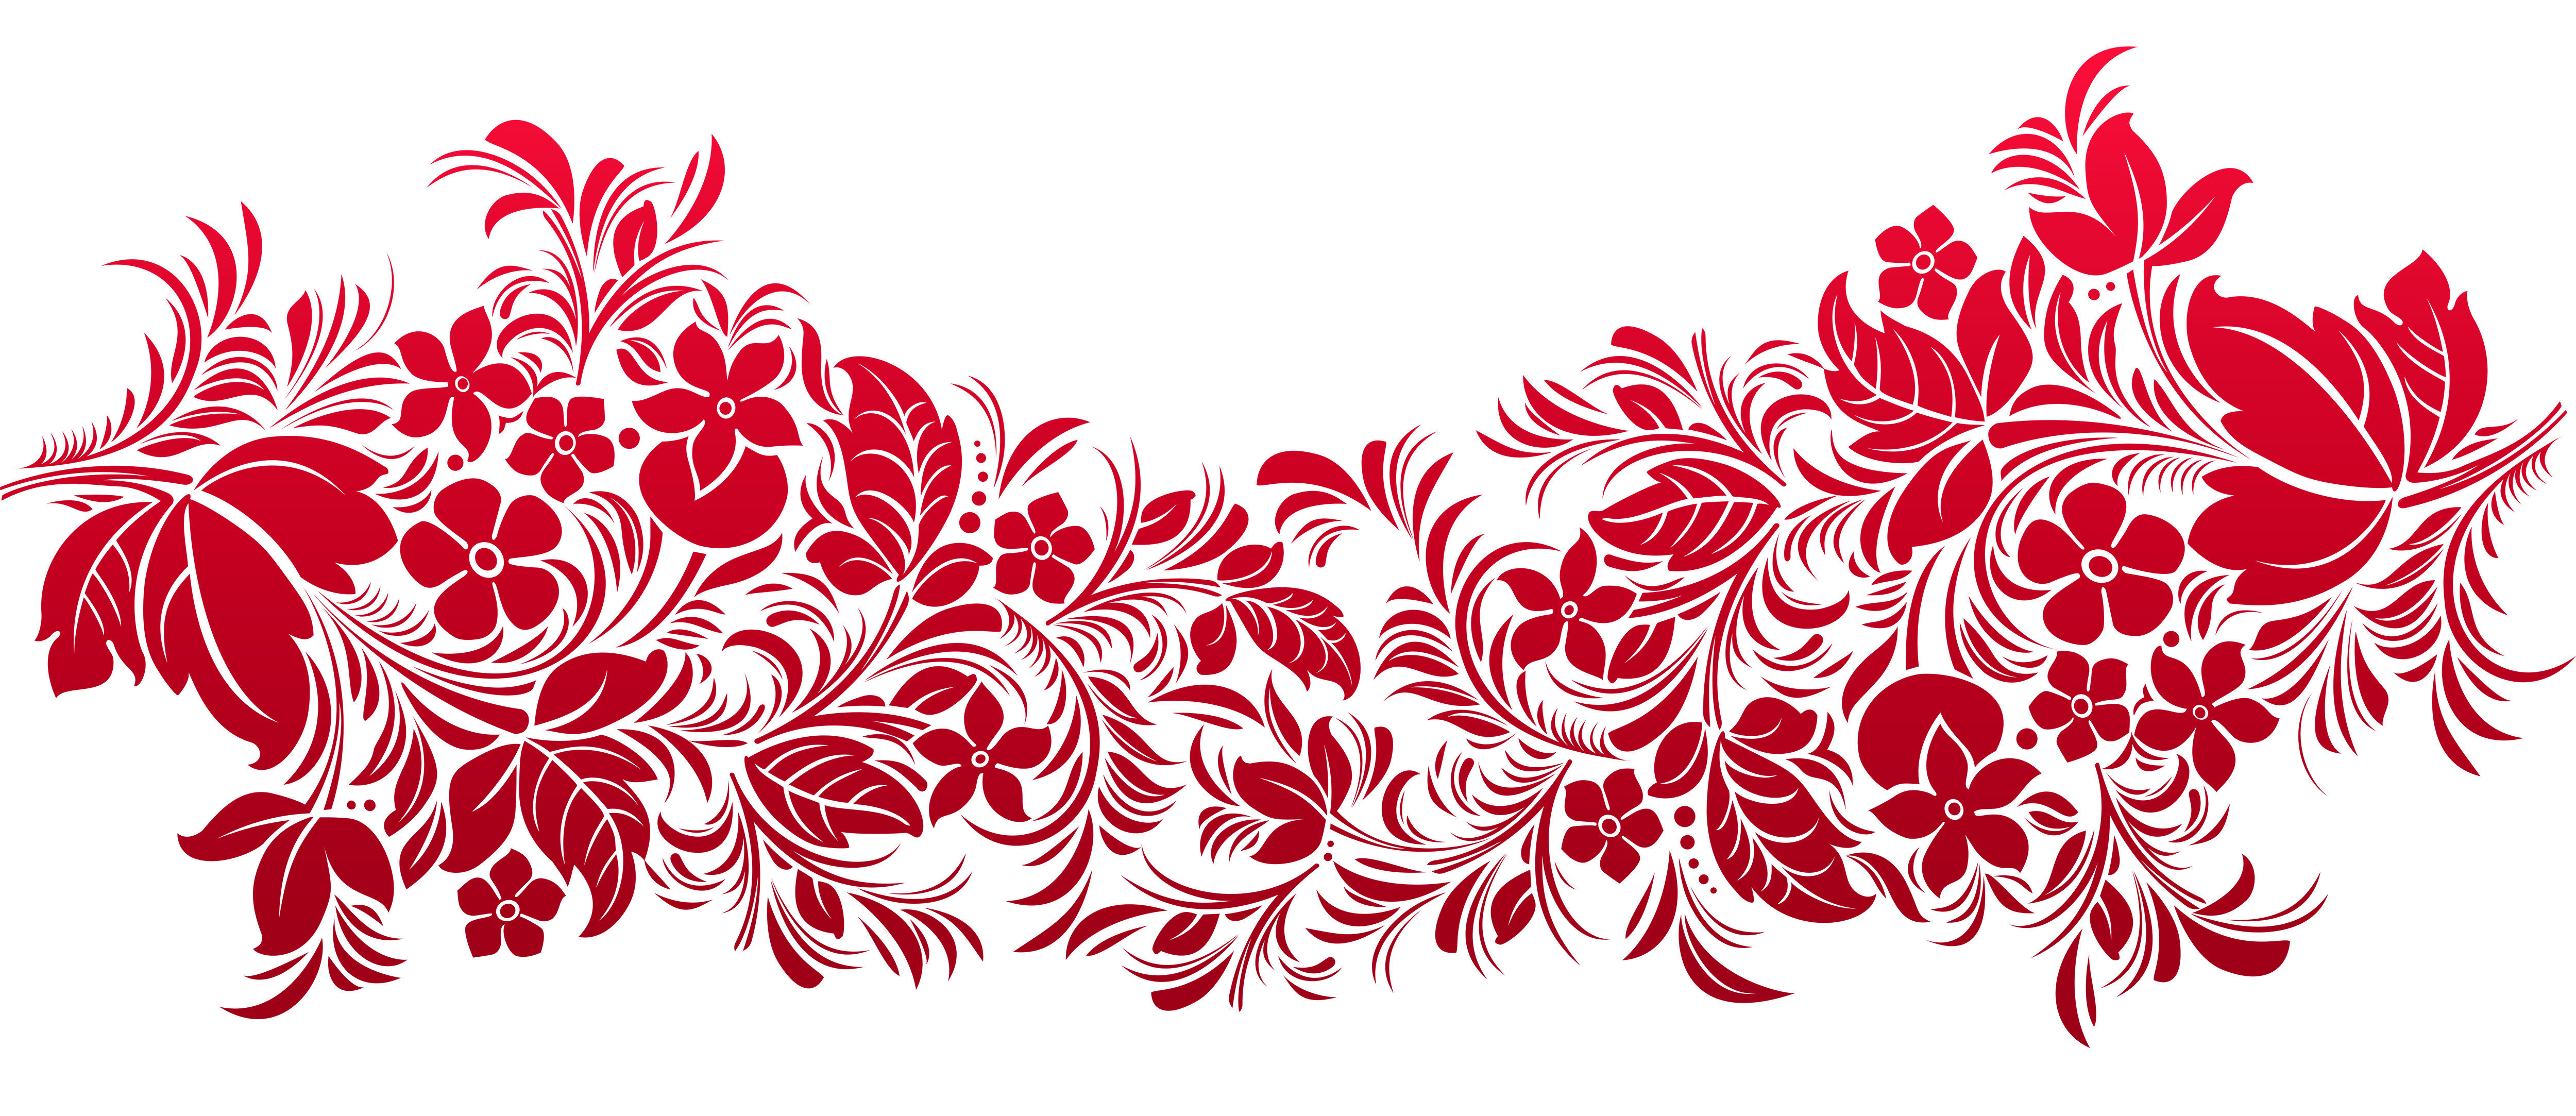 Flower pattern clipart image royalty free Red Transparent Decoration PNG Clipart | Gallery Yopriceville ... image royalty free